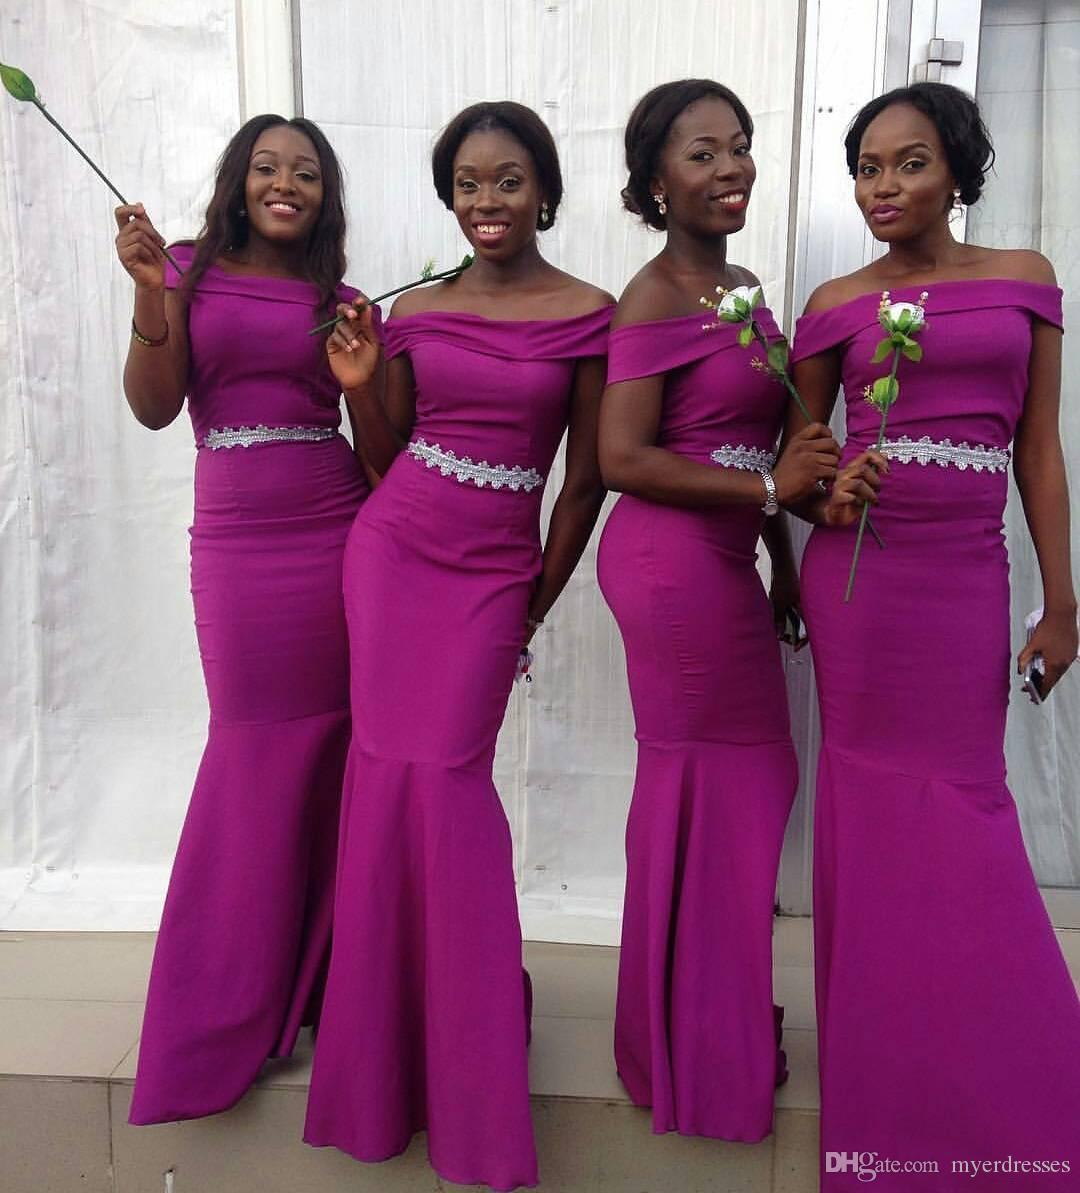 Purple nigerian long mermaid bridesmaid dresses off shoulder white purple nigerian long mermaid bridesmaid dresses off shoulder white sash wedding party dresses floor length draped maid of honor dresse wb tropical ombrellifo Choice Image